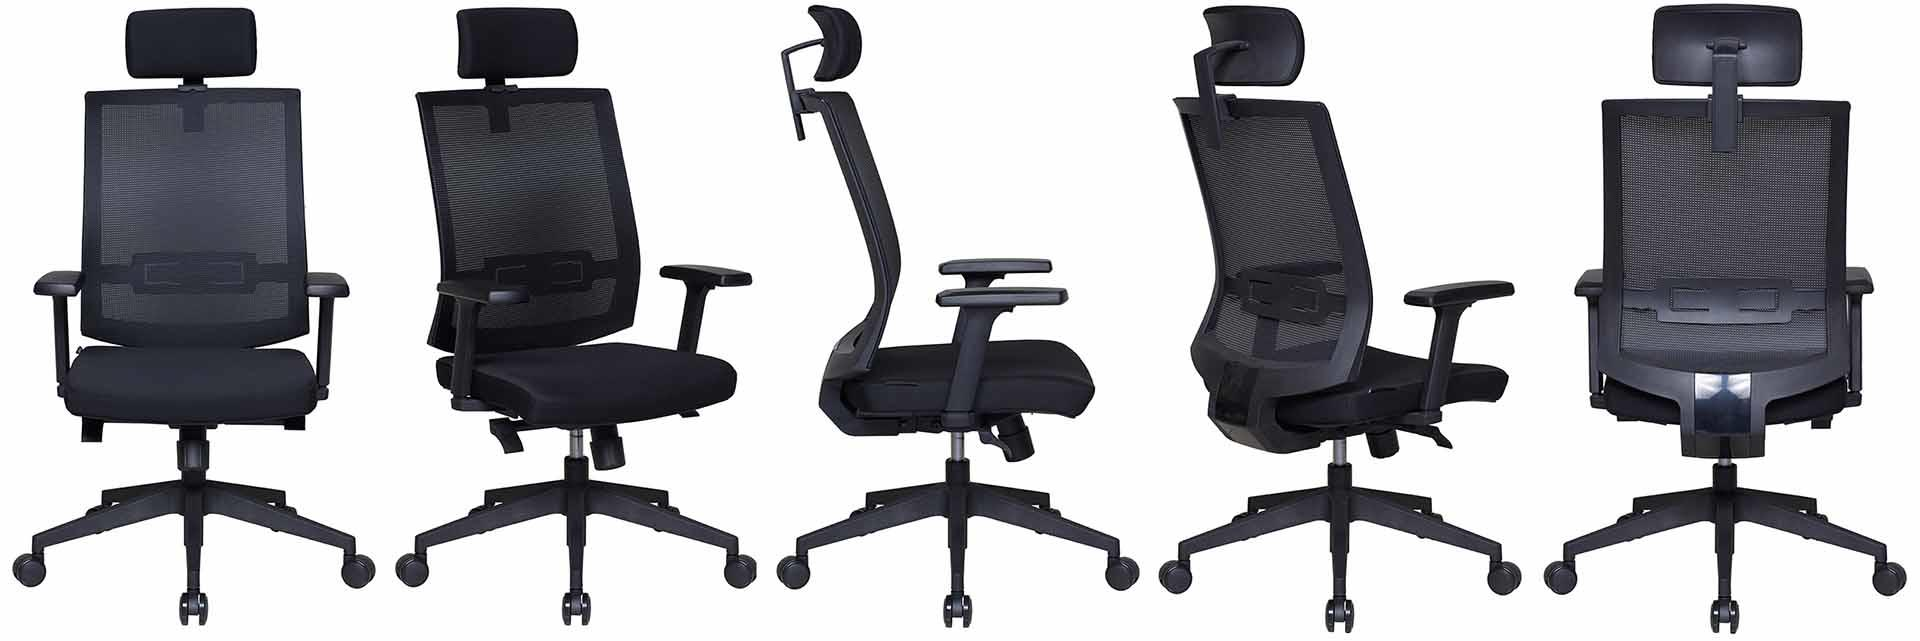 Tevson high end mid back mesh office chair chairs for reception